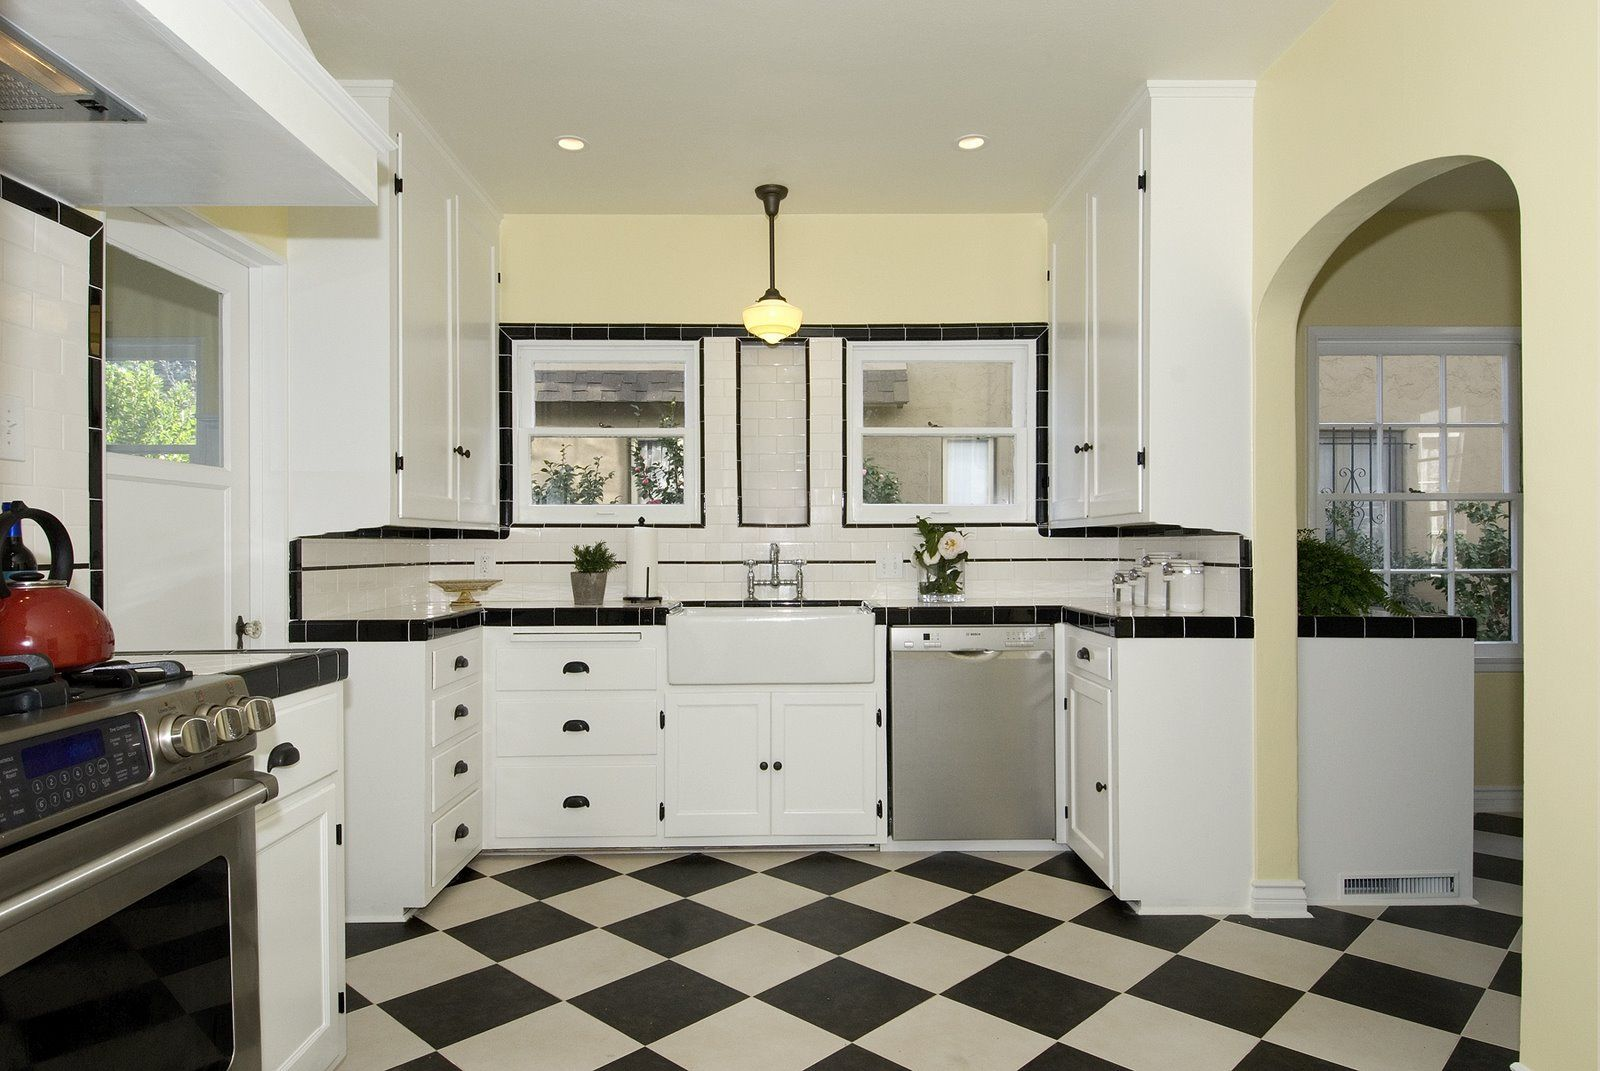 dark gray/off black and cream checkered floor instead of black and ...